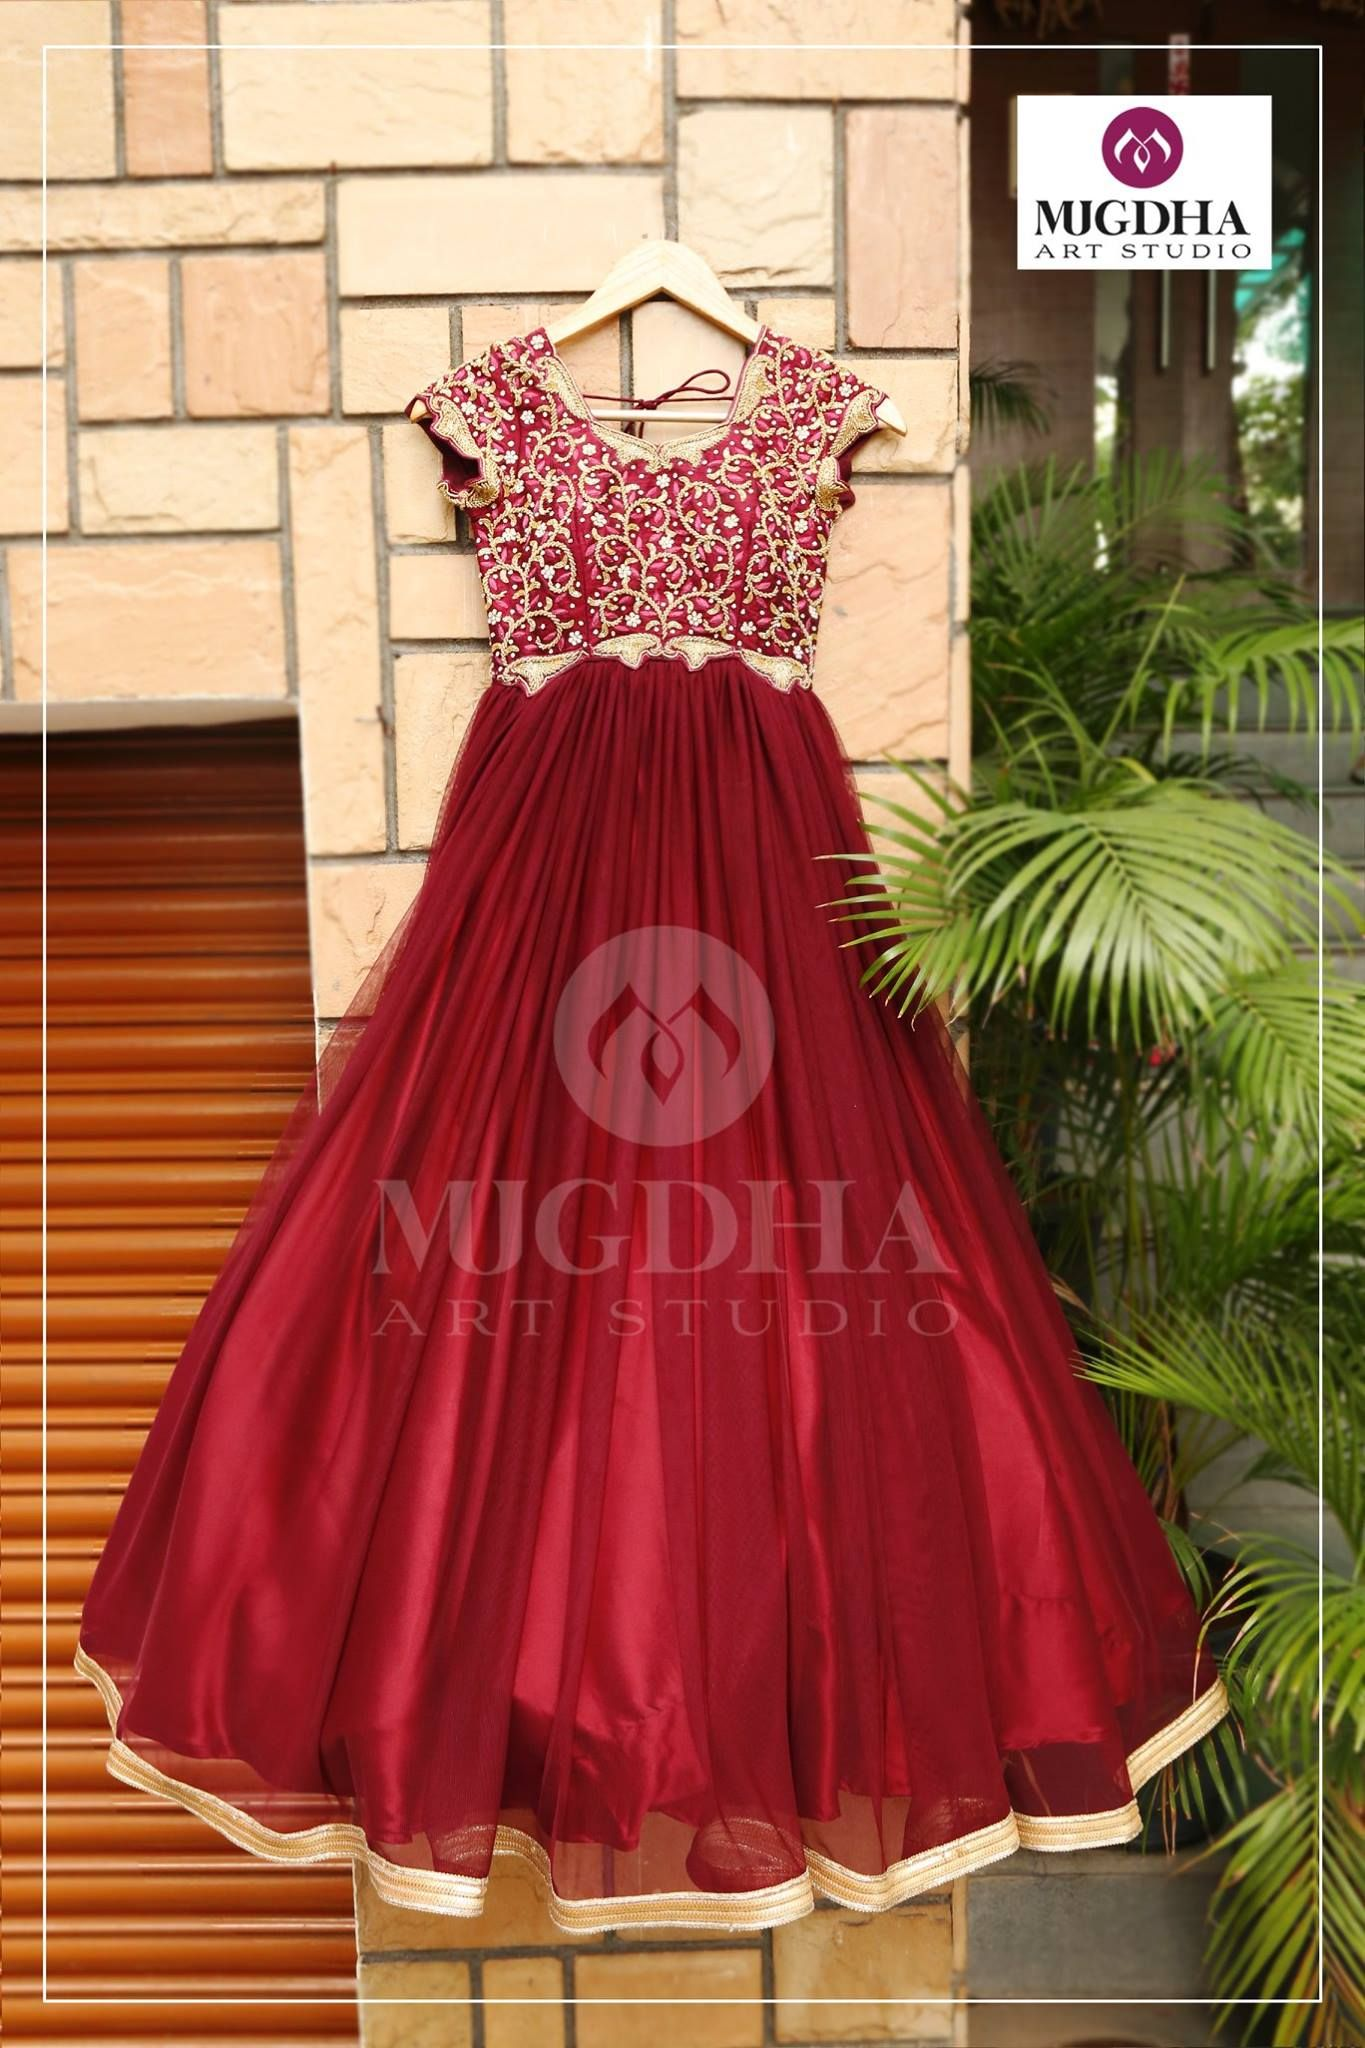 Beautiful Long Gown in Gorgeous Color combination from Mugdha Art Studio.